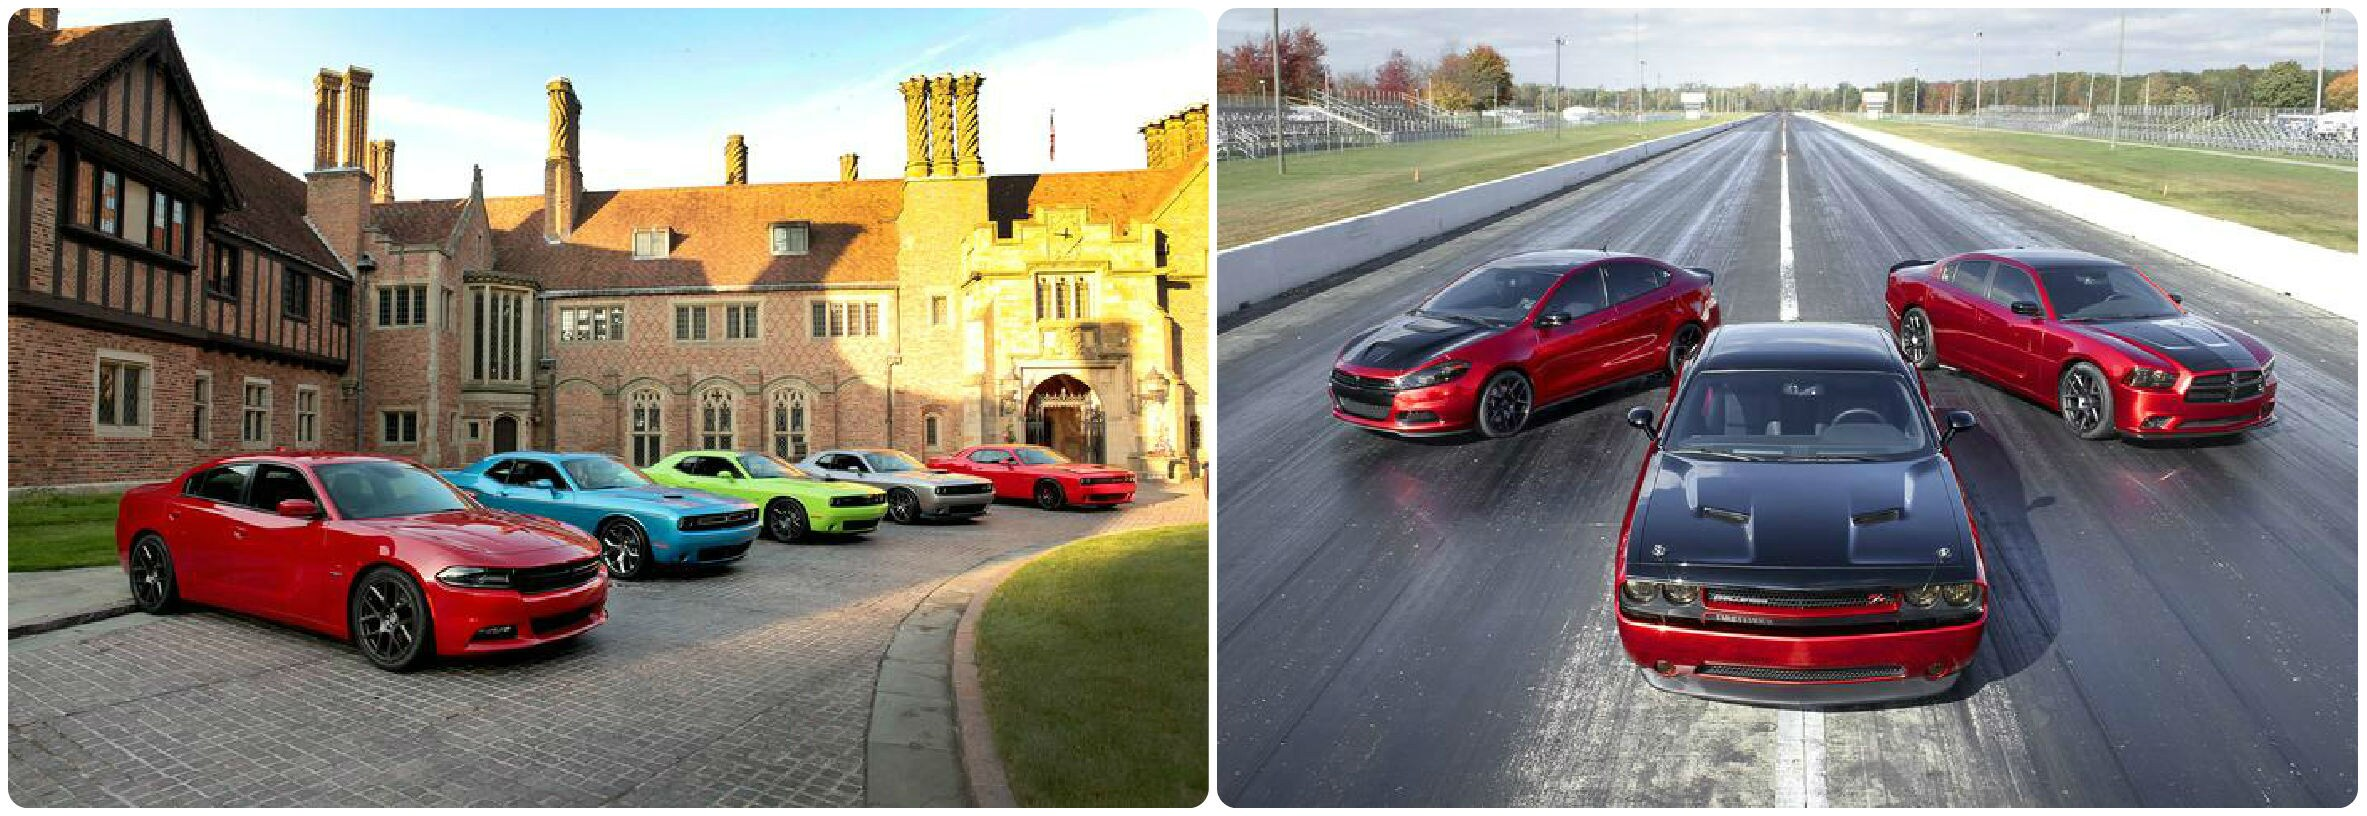 Photo stitch of Dodge performance cars